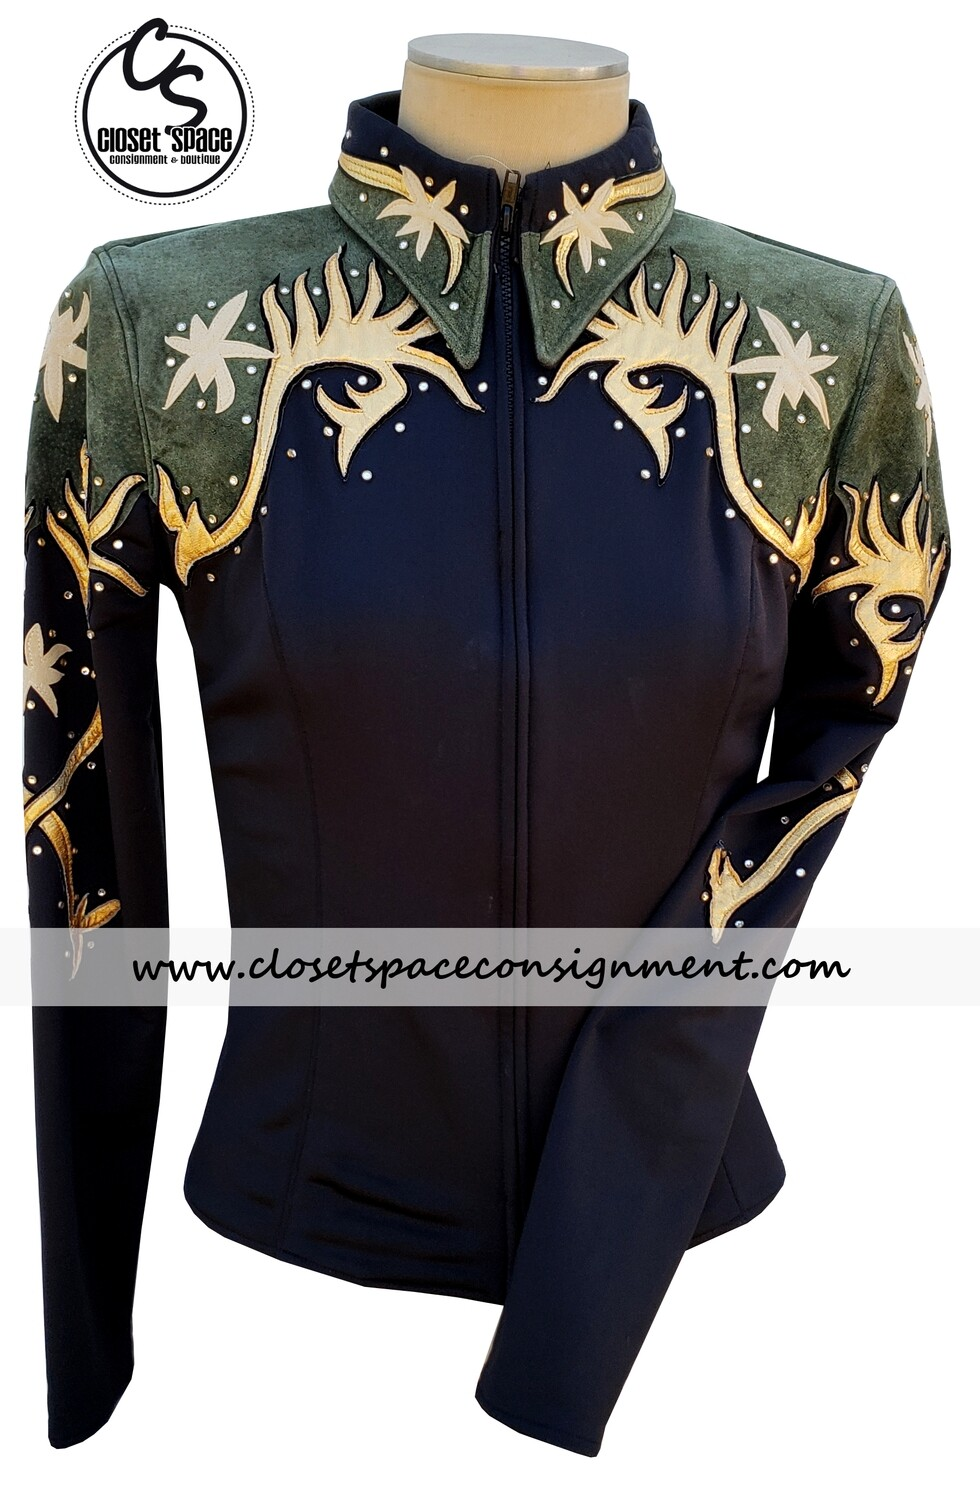 'Two Creeks' Black, Gold & Green Jacket